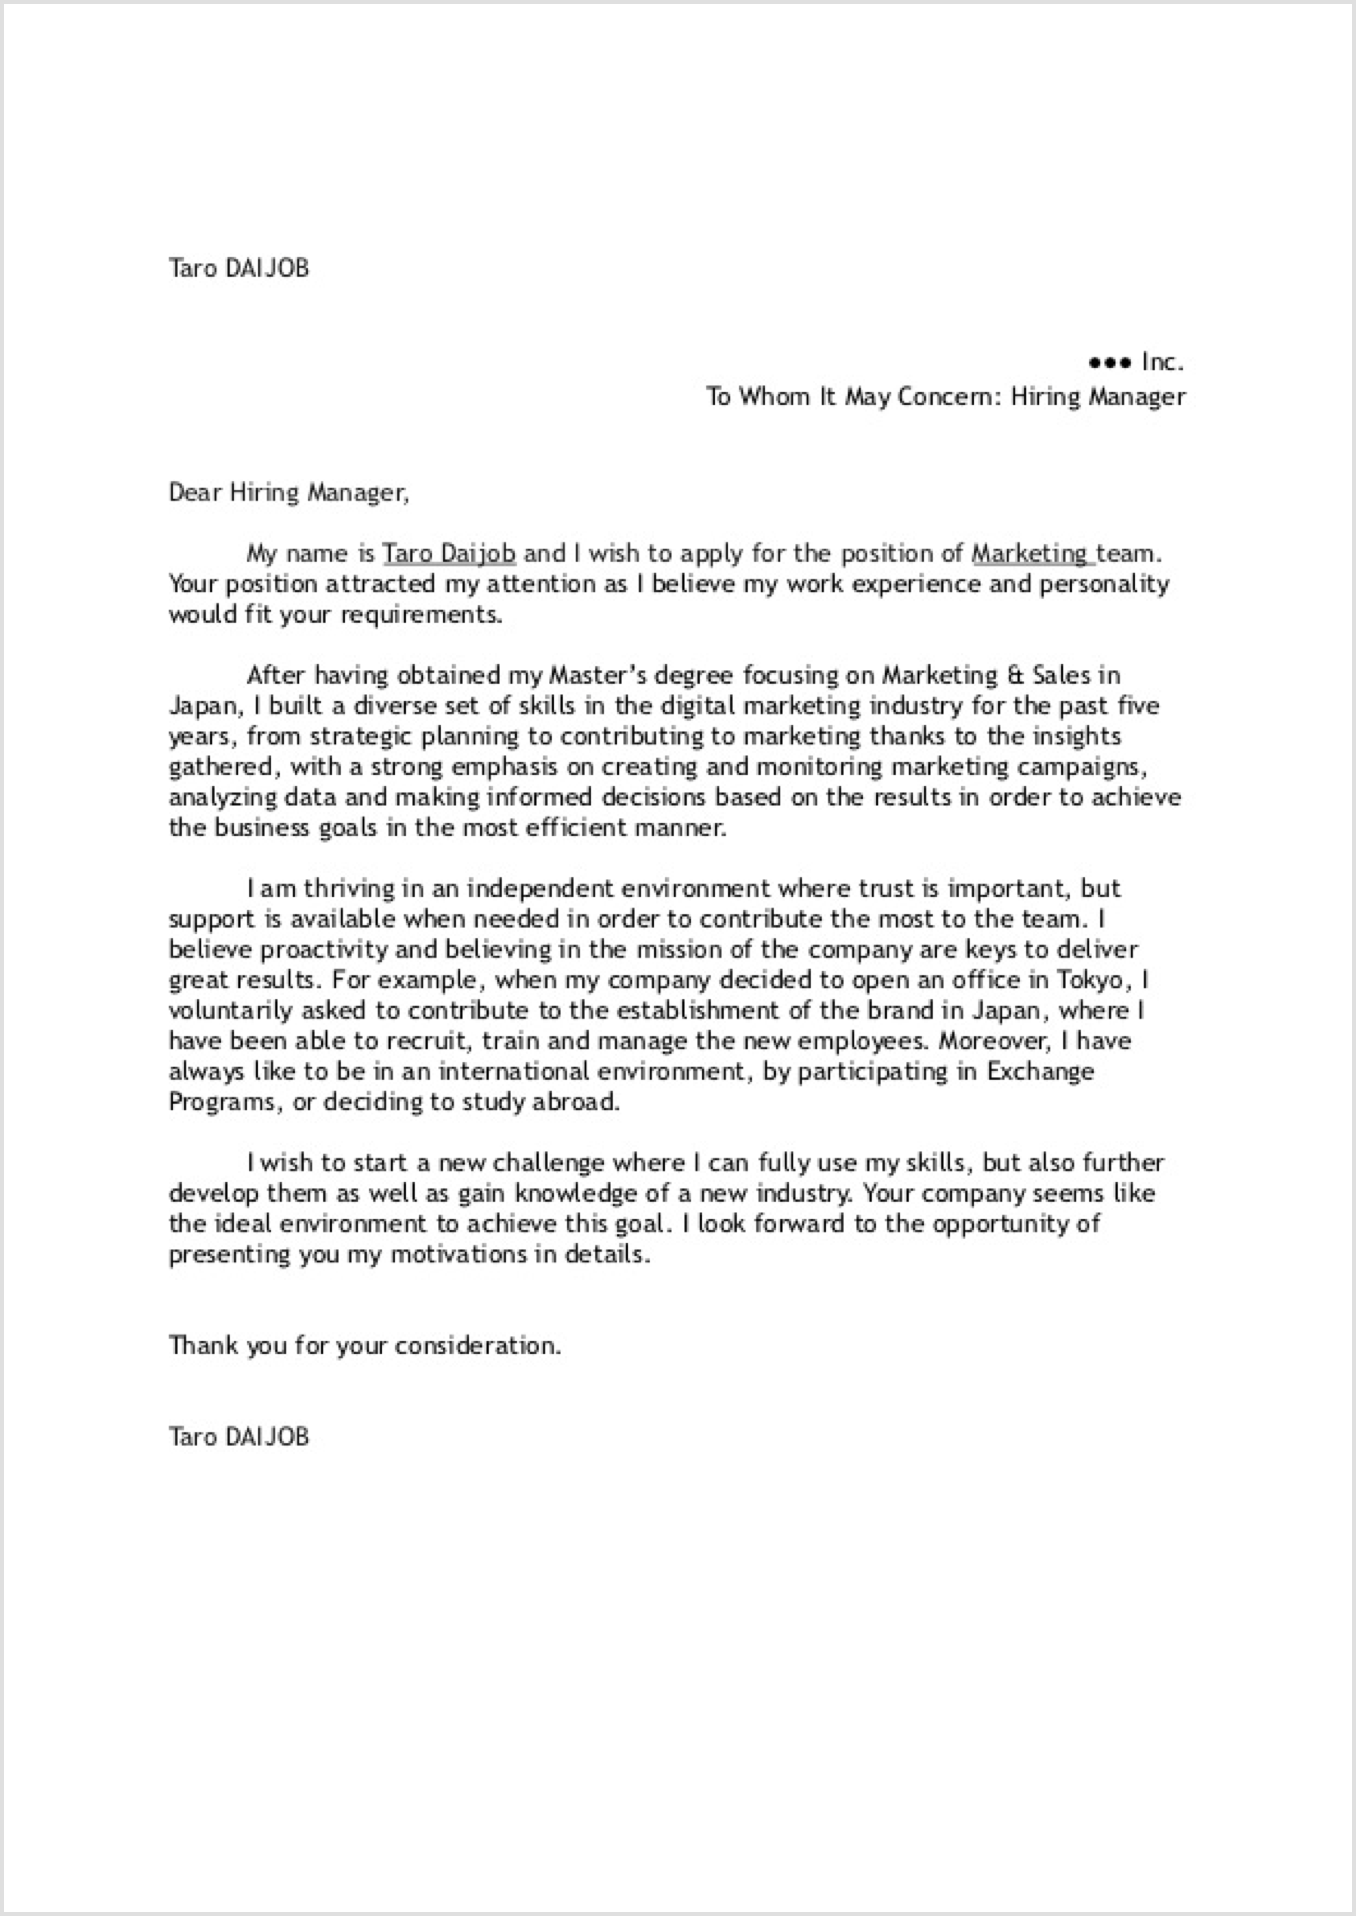 Short Sale Letter Of Explanation from www.daijob.com